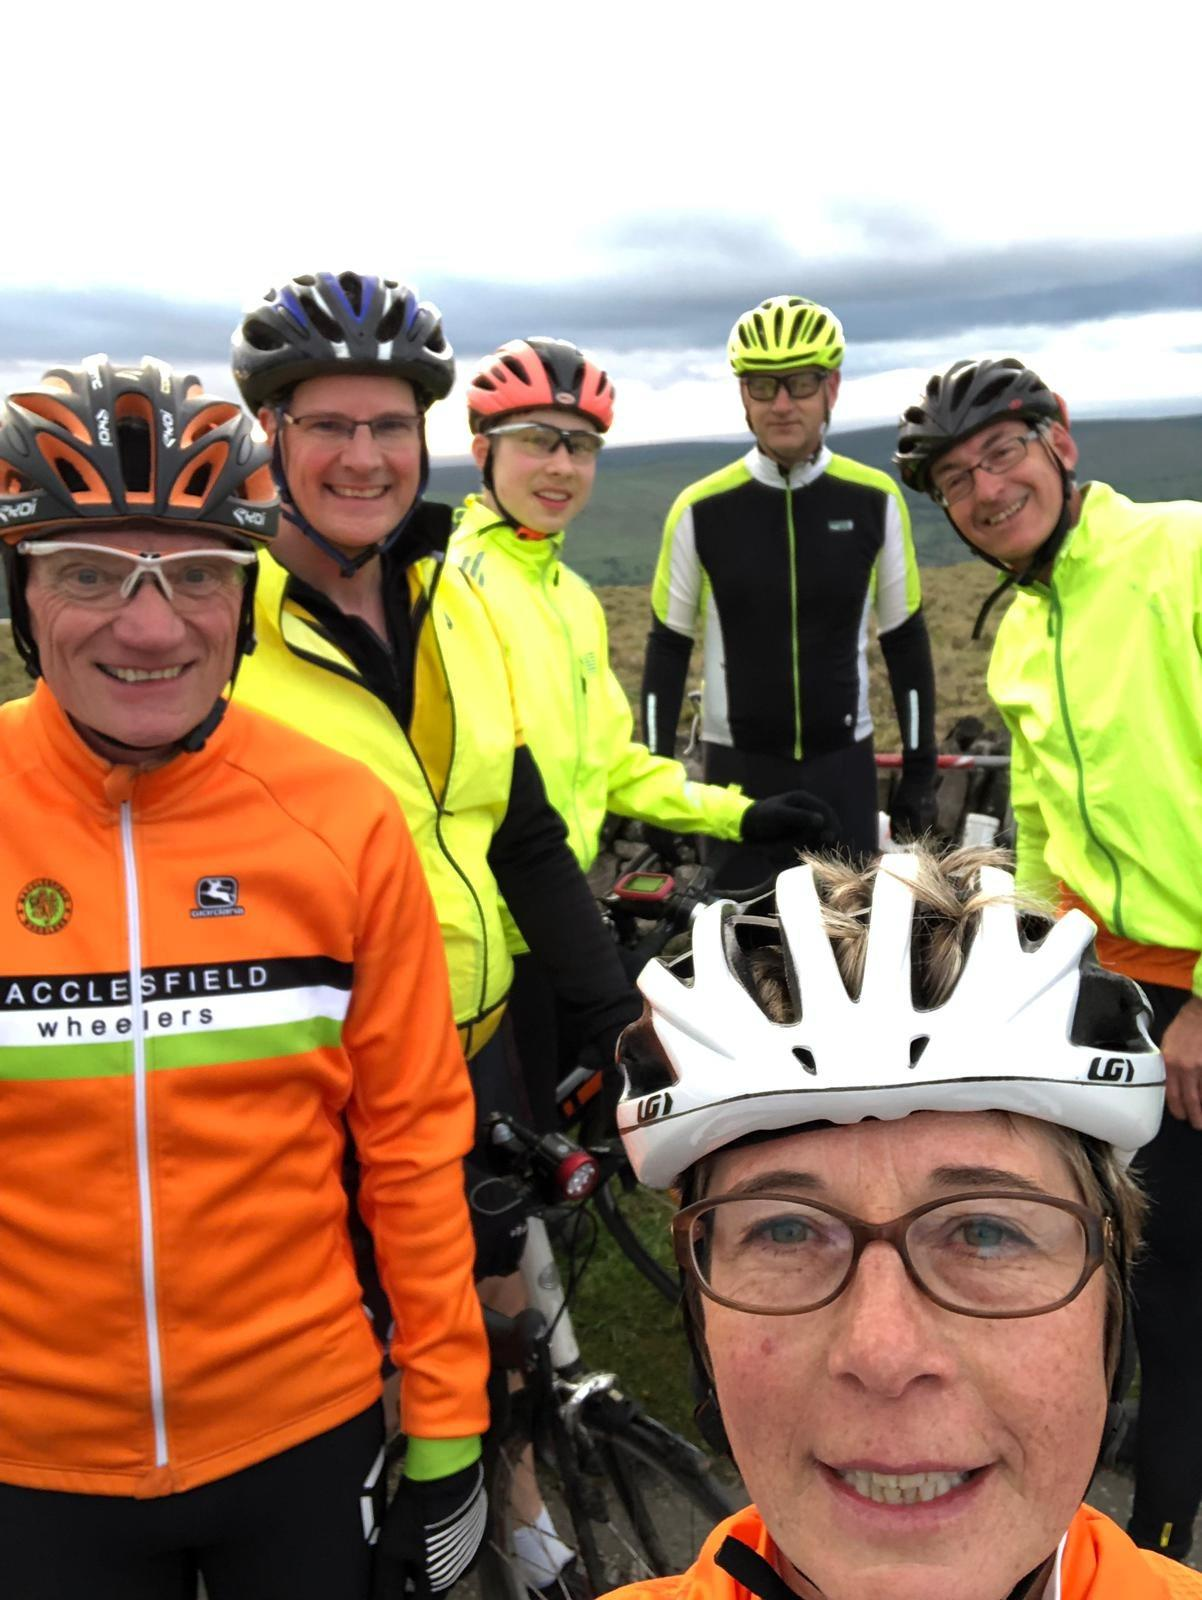 Nigel, James, Stephen (who has been doing this ride since it started, longer than any of us), Ewan, Alison, Steve).